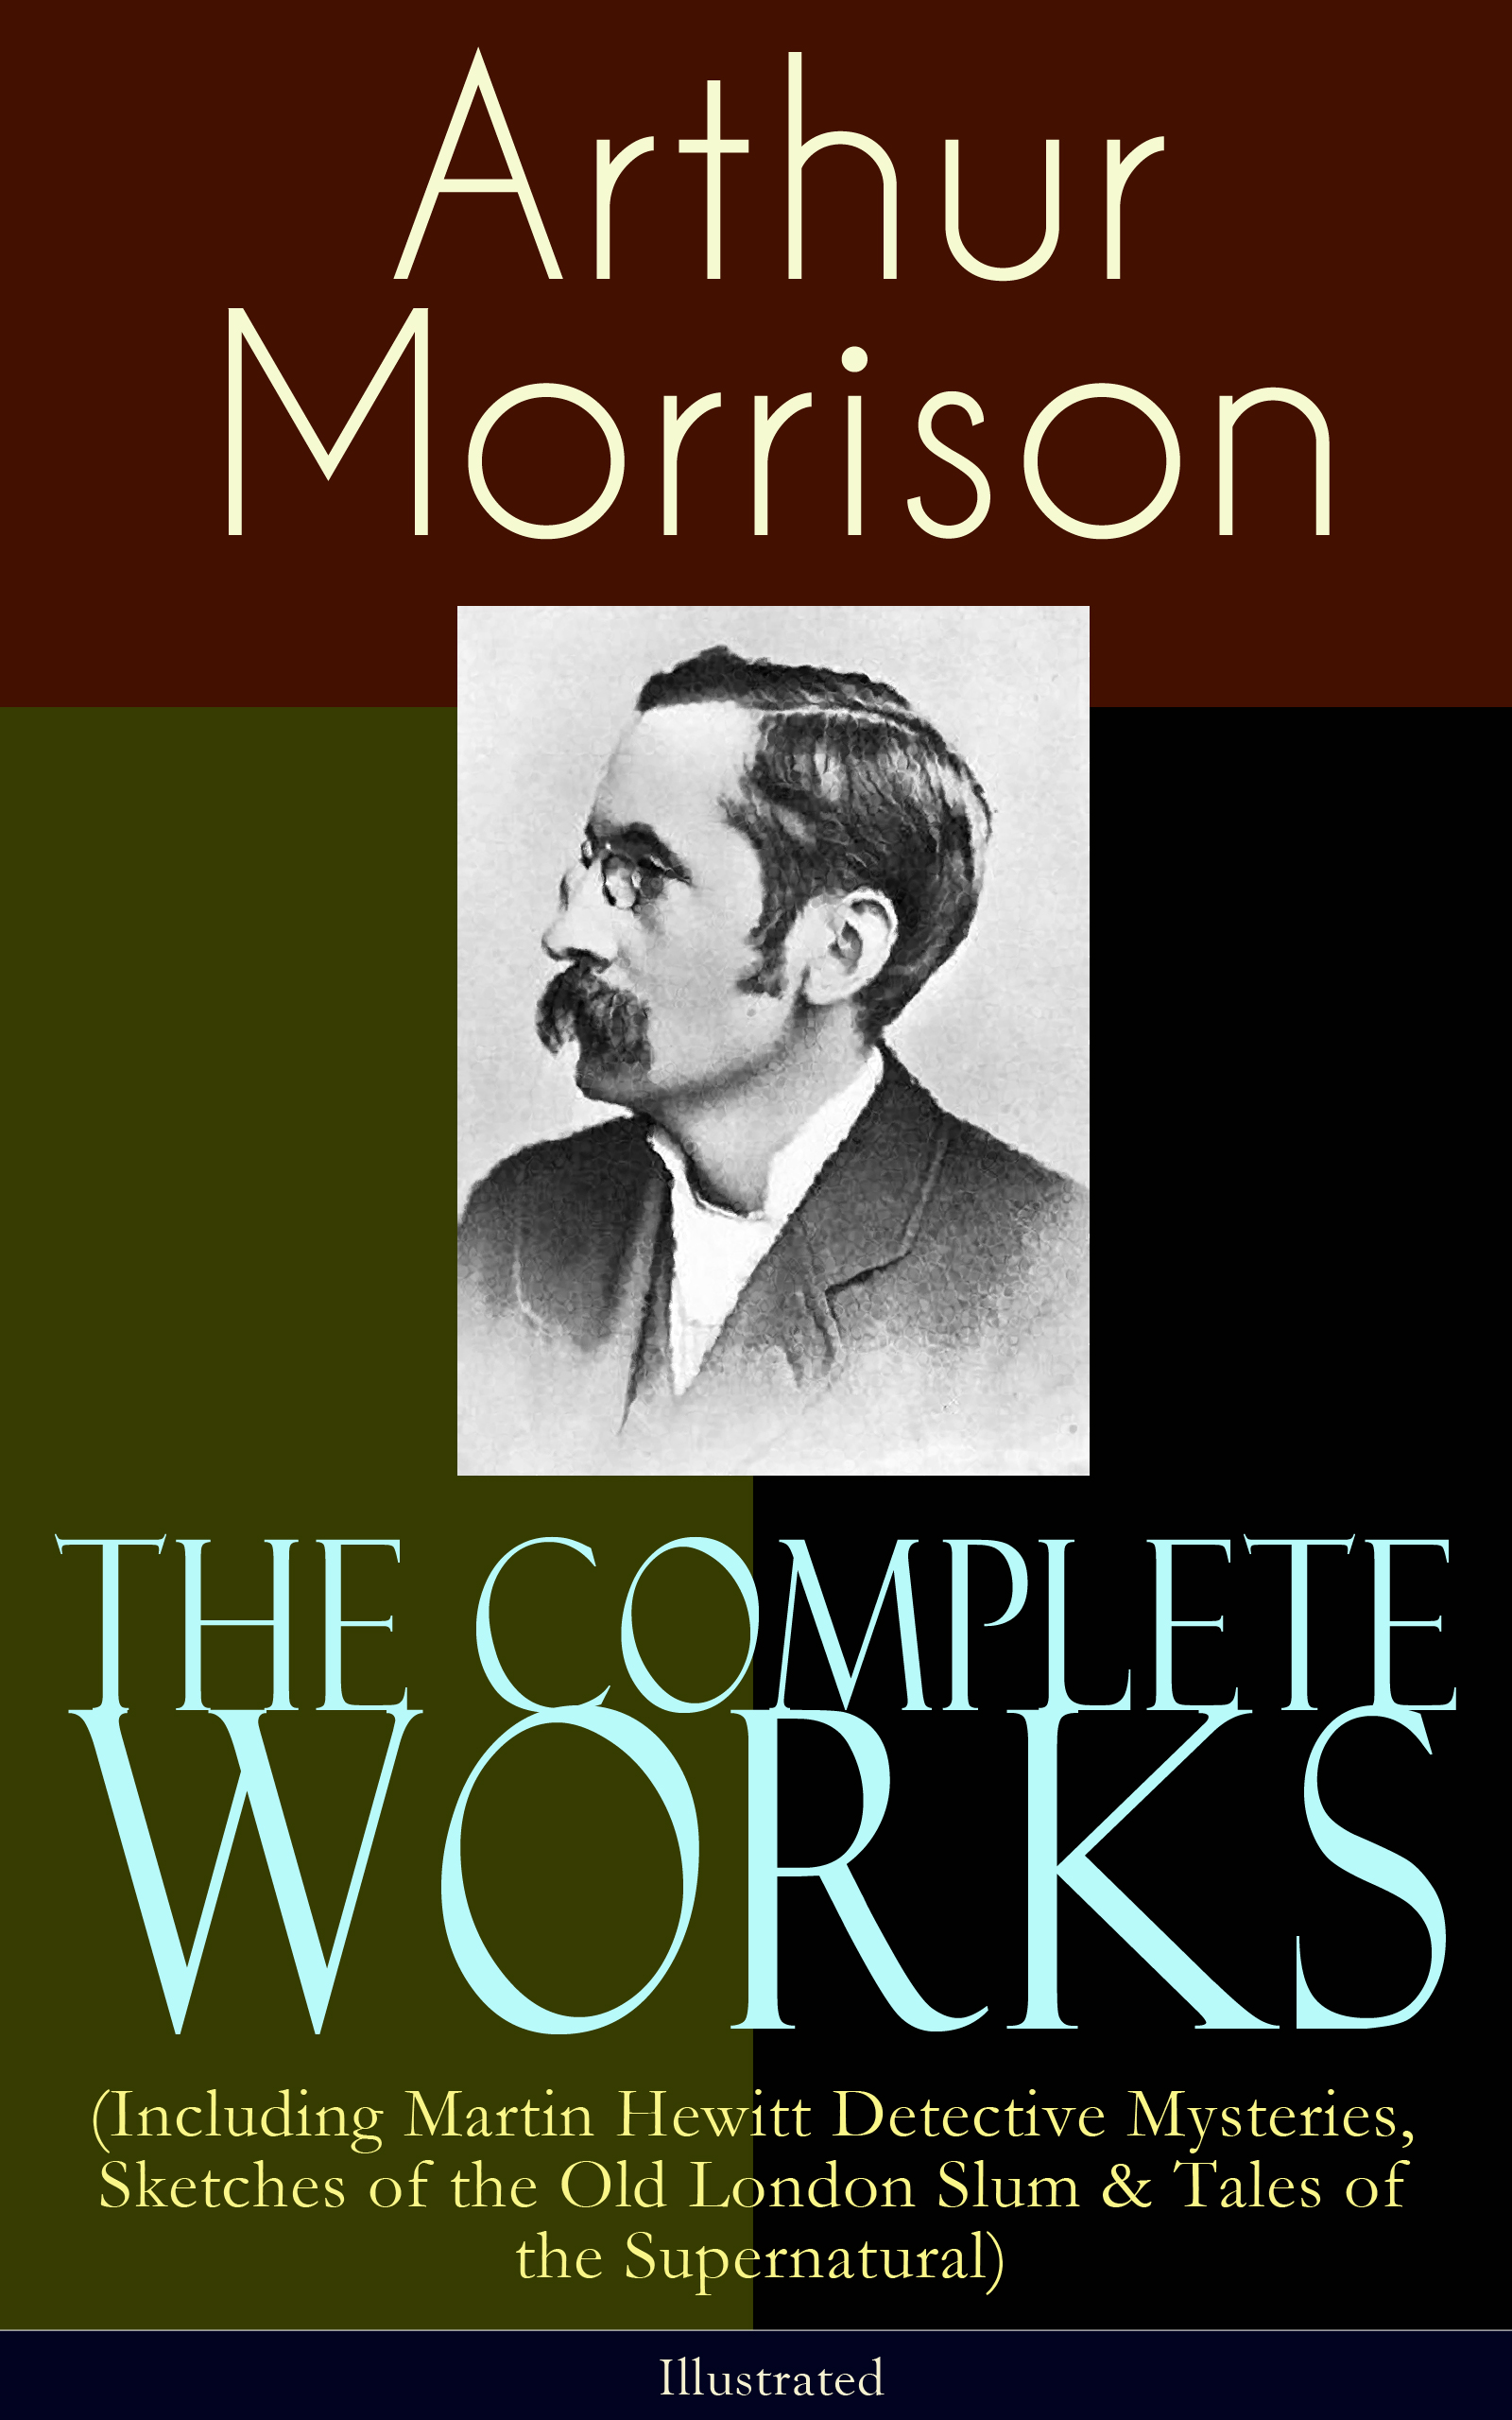 Фото - Arthur Morrison The Complete Works of Arthur Morrison (Including Martin Hewitt Detective Mysteries, Sketches of the Old London Slum & Tales of the Supernatural) - Illustrated crump arthur the theory of stock exchange speculation